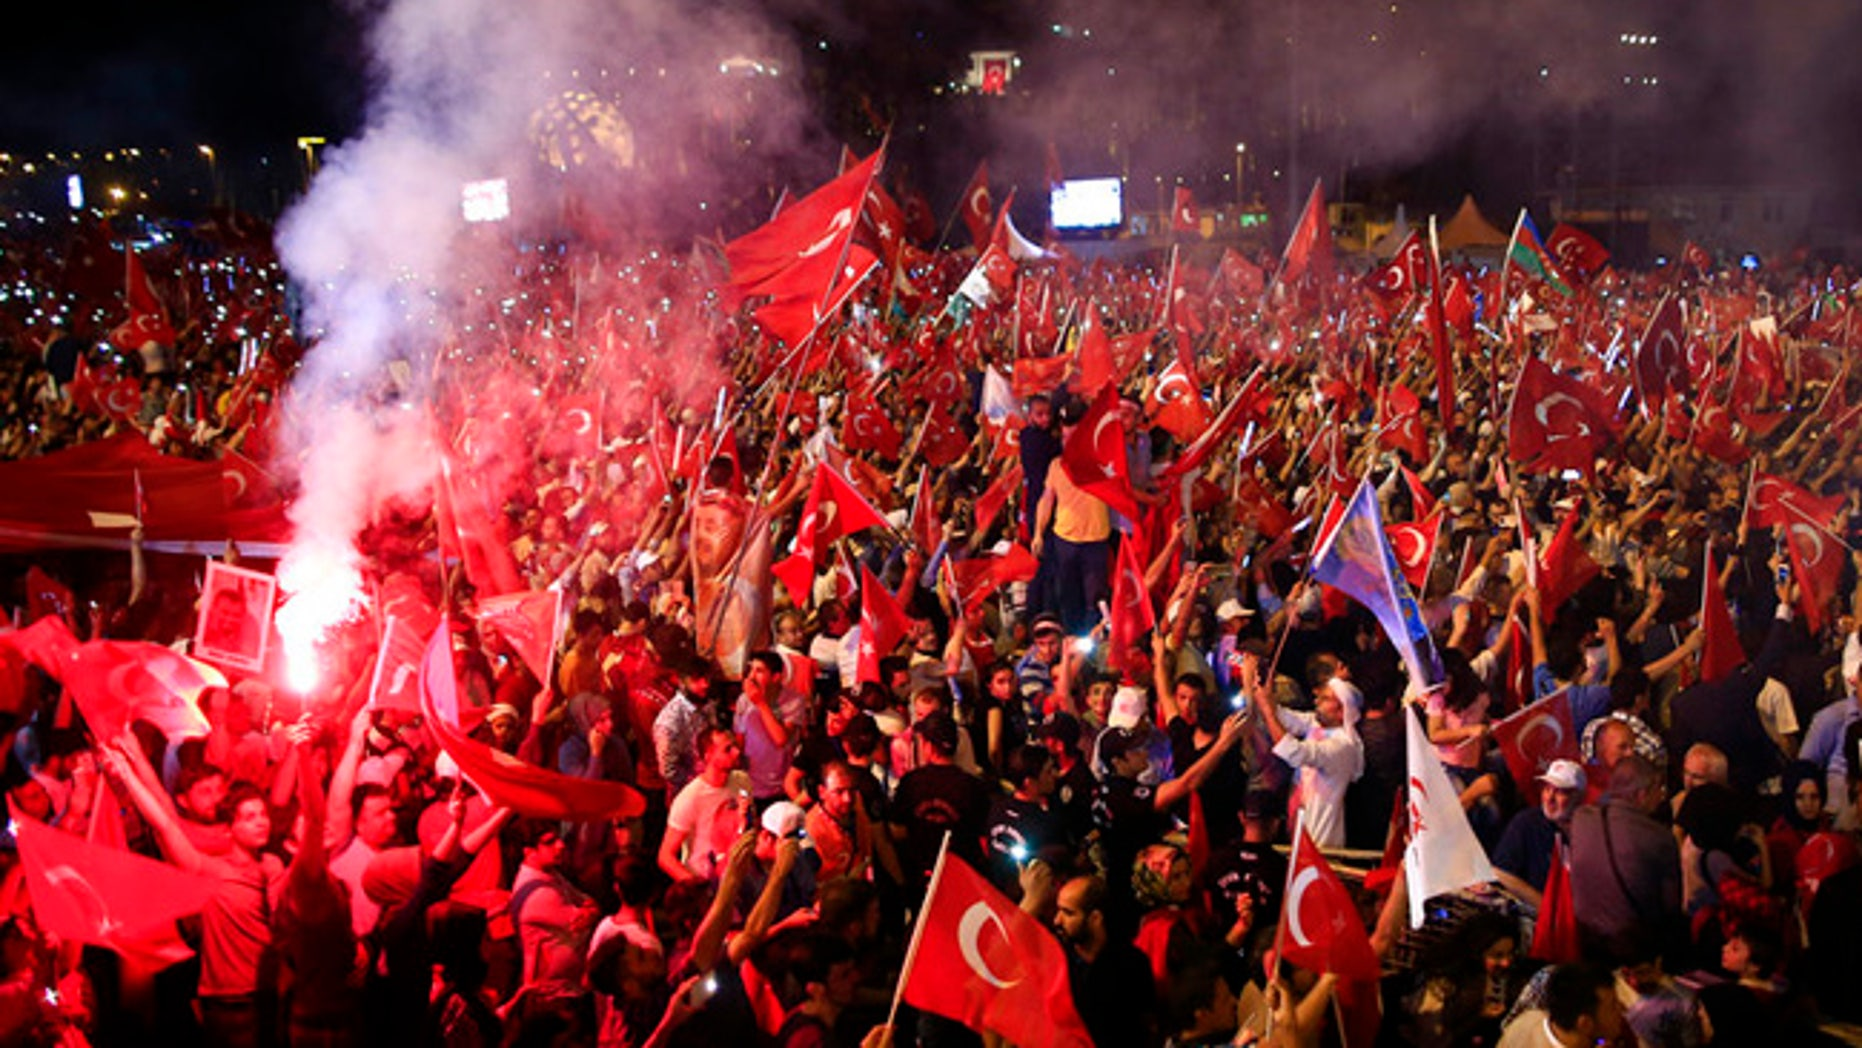 """Crowd cheer as Turkey's President Recep Tayyip Erdogan speaks at the July 15 Martyr's bridge on a """"National Unity March"""" to commemorate the one year anniversary of the July 15, 2016 botched coup attempt, in Istanbul, Saturday, July 15, 2017. Turkey commemorates the first anniversary of the July 15 failed military attempt to overthrow president Erdogan, with a series of events honoring some 250 people, who were killed across Turkey while trying to oppose coup-plotters. (AP Photo/Lefteris Pitarakis)"""